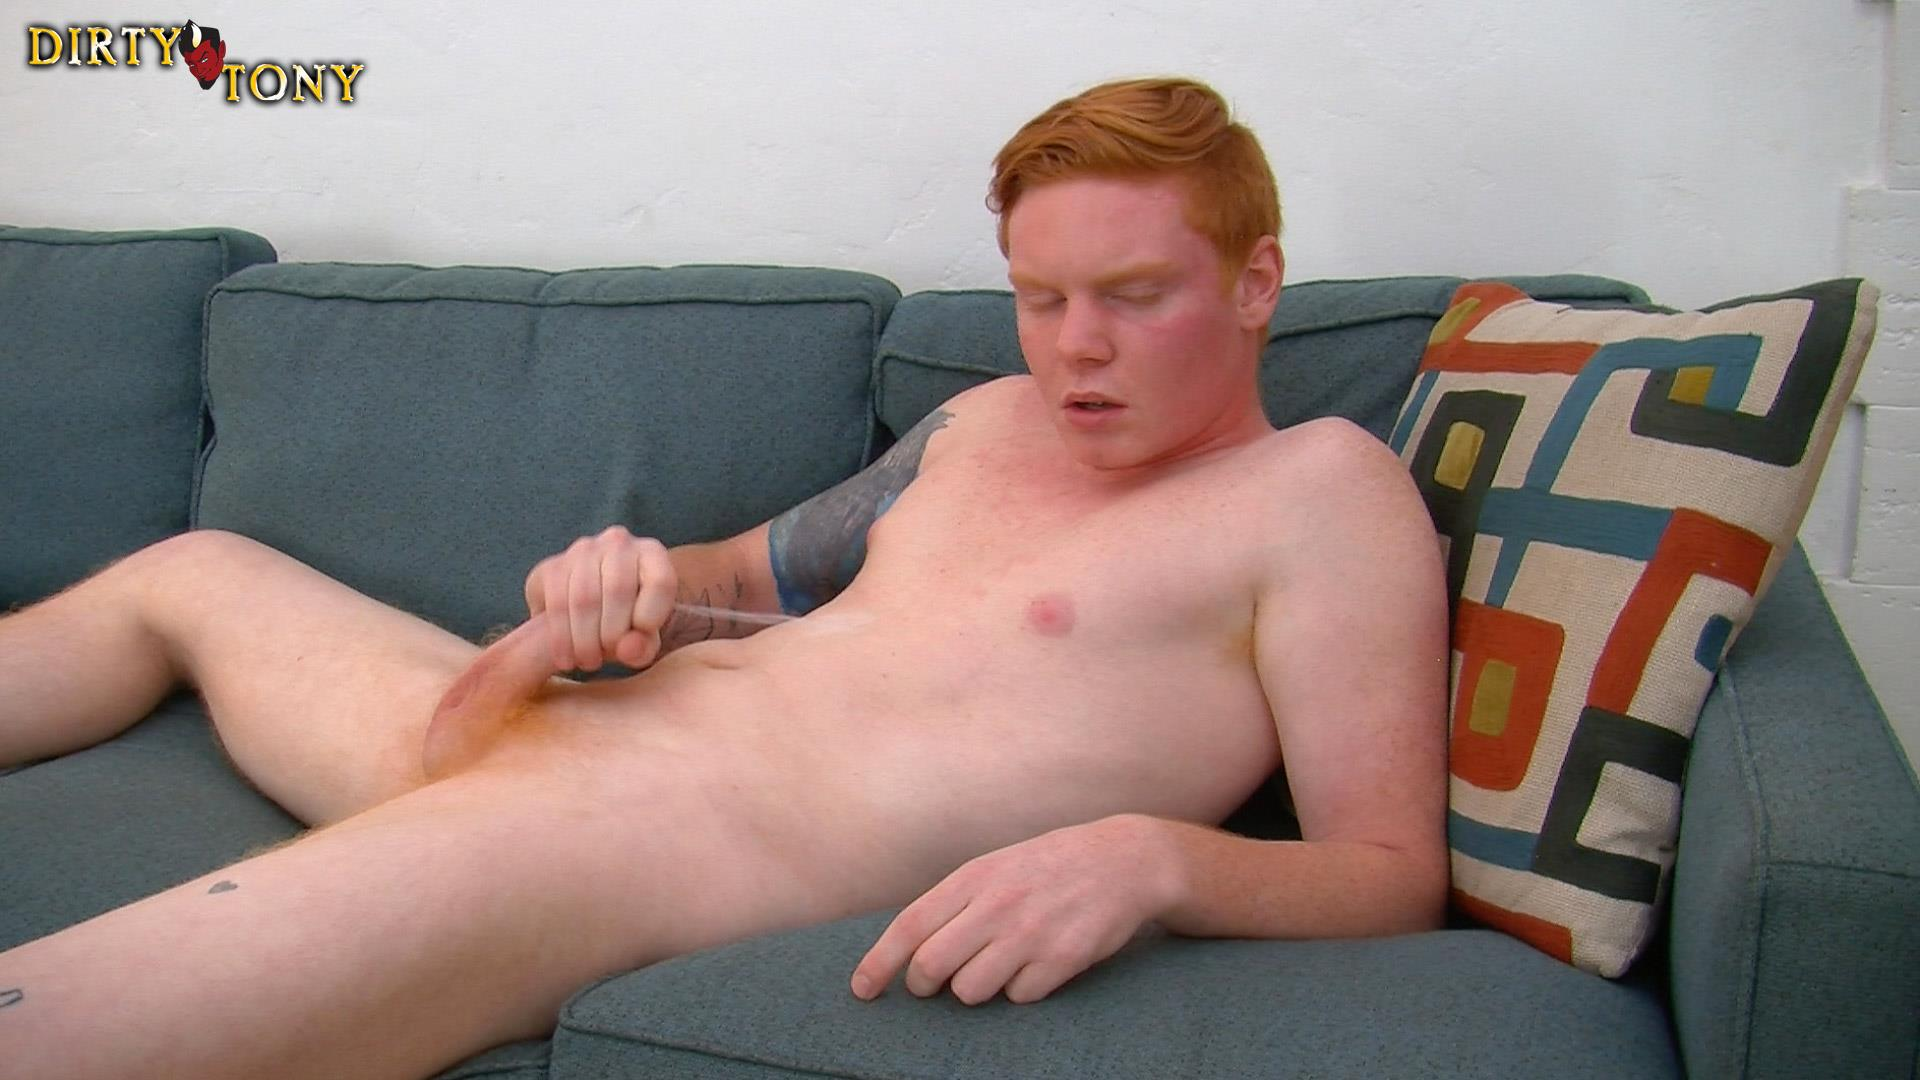 Dirty-Tony-Max-Breeker-Redheaded-Twink-Masturbation-Amateur-Gay-Porn-13 Bisexual 19 Year Old Redheaded Twink Auditions For Gay Porn